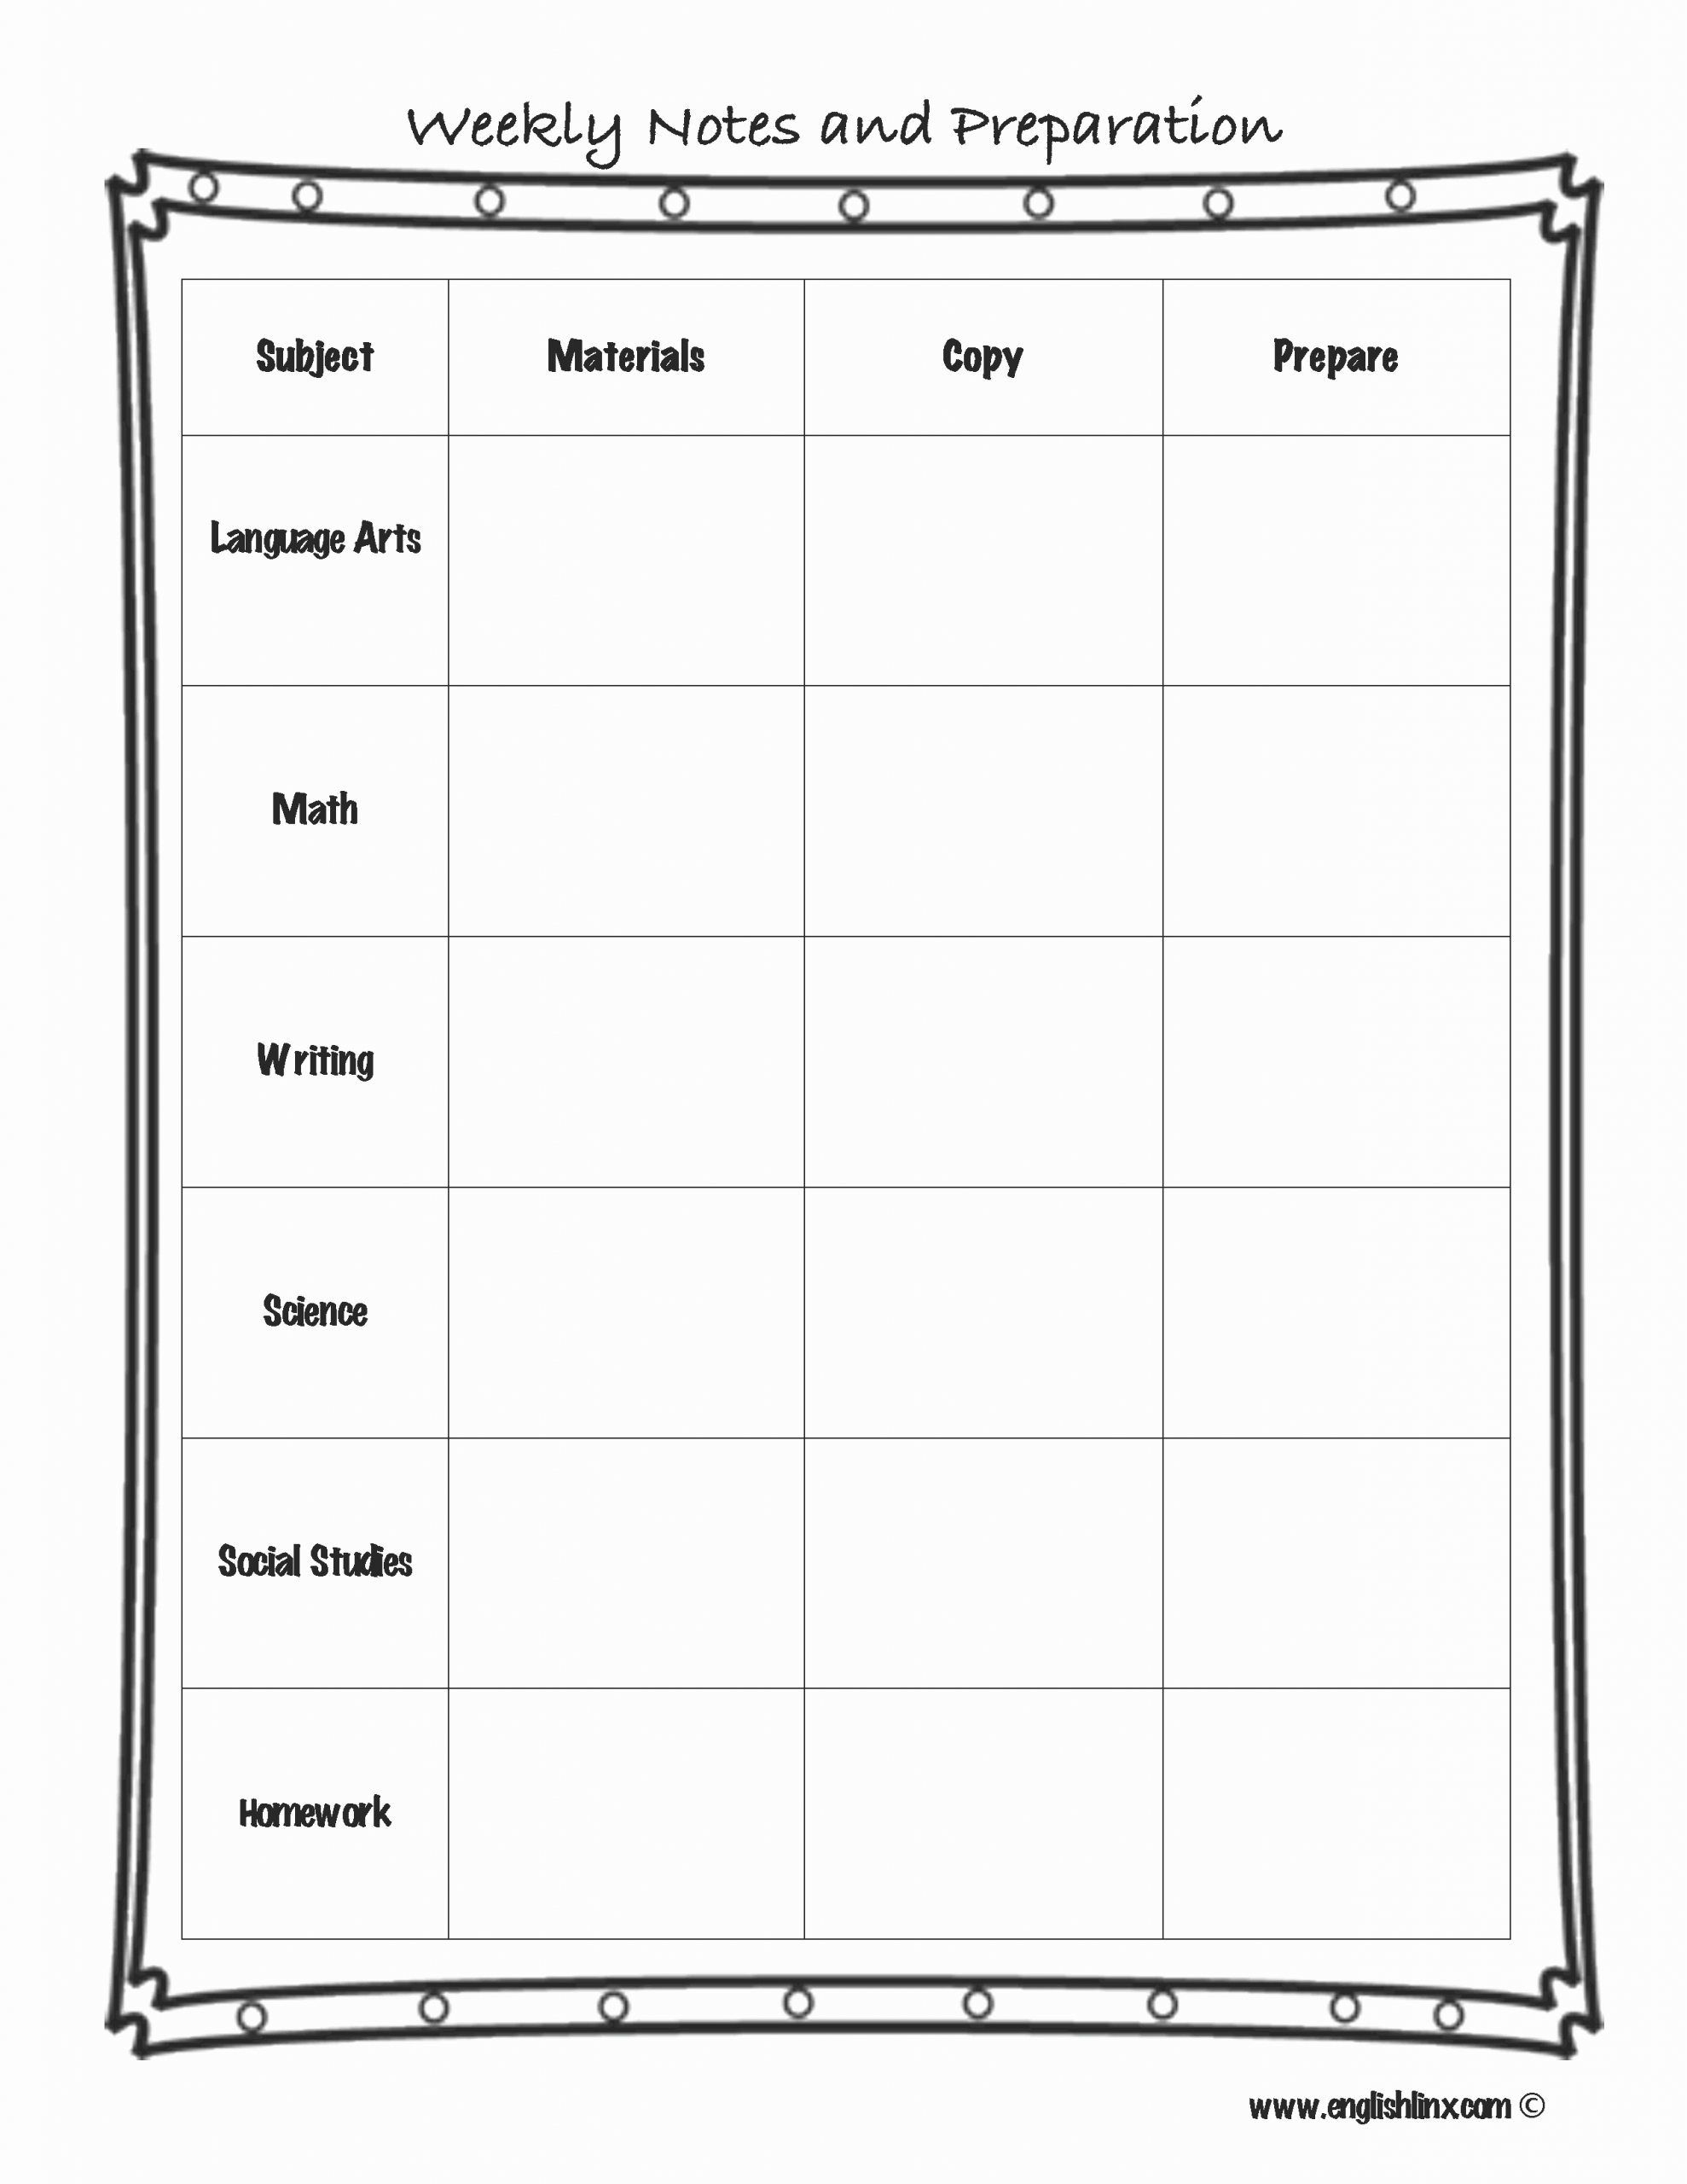 Weekly Lesson Plans Template Fresh Lesson Plan Template